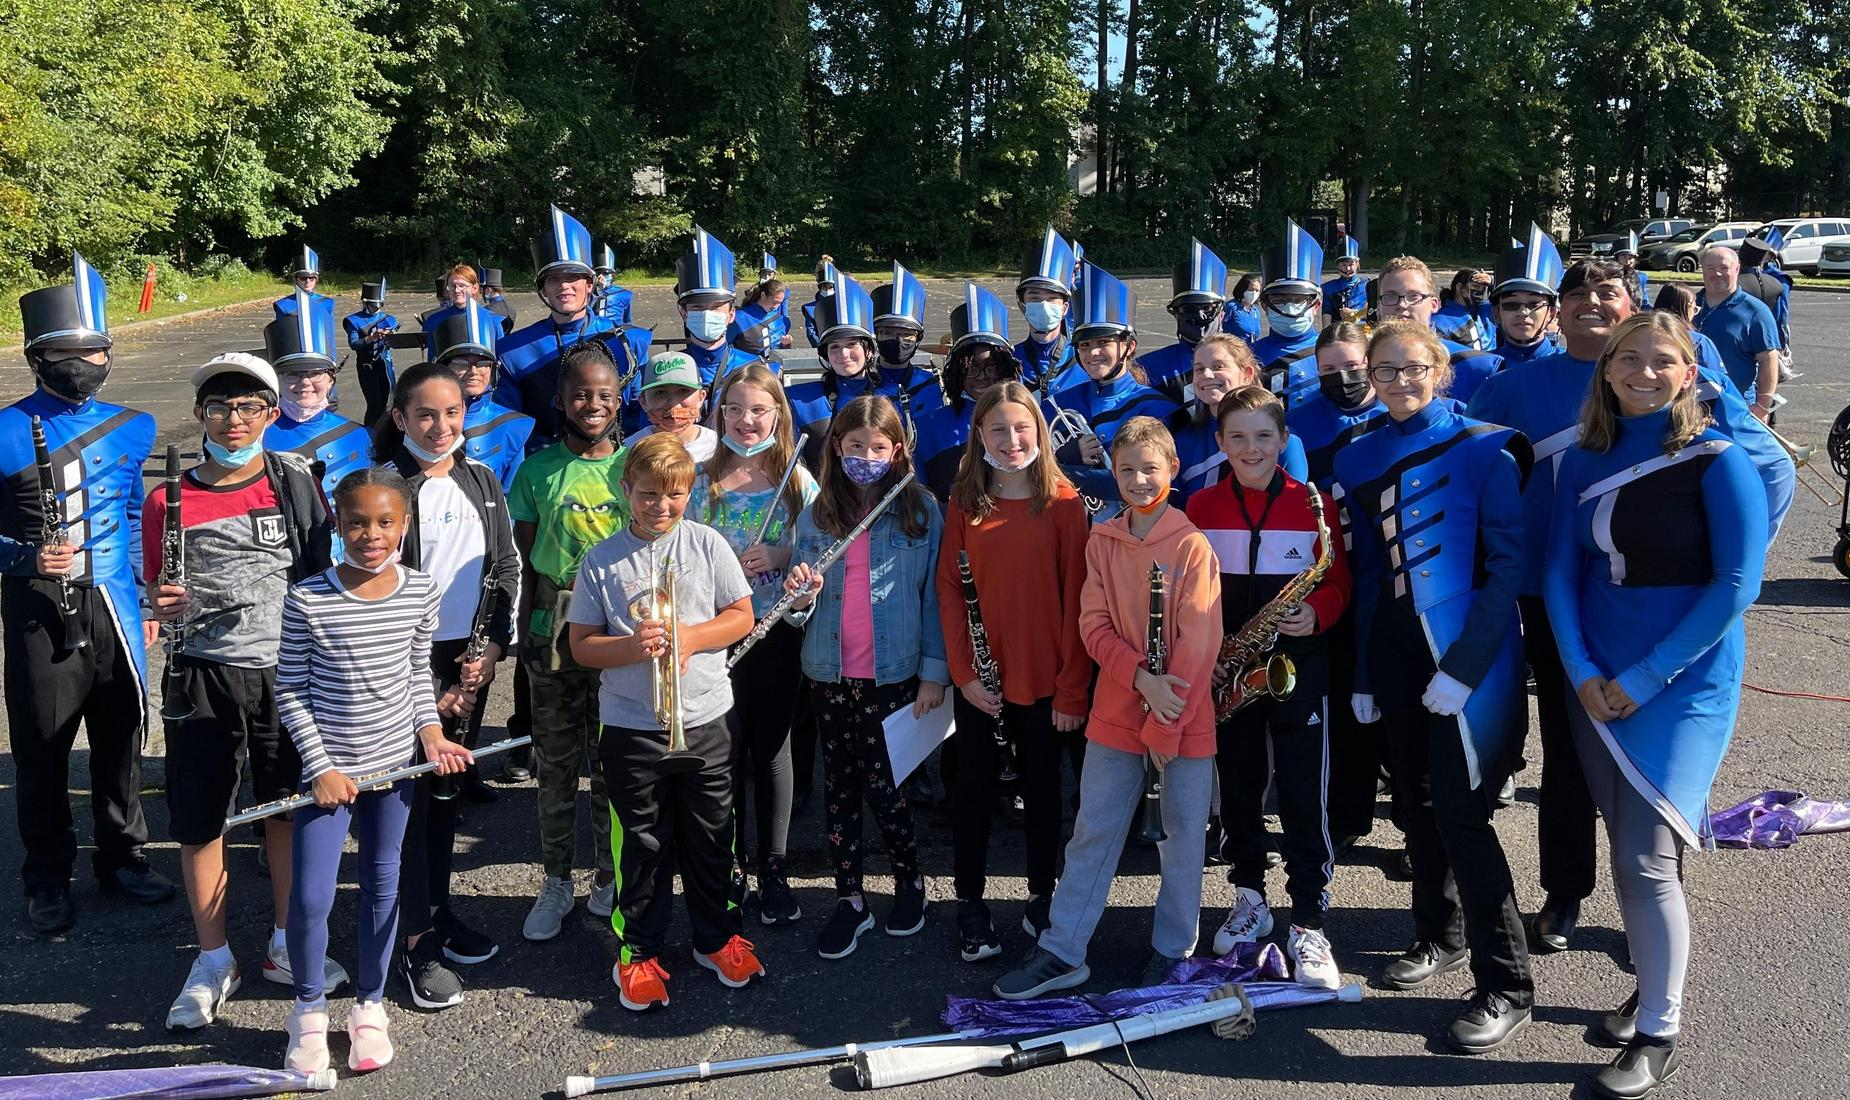 Members of the high school marching band in their band uniforms pose with members of the Struble elementary band.